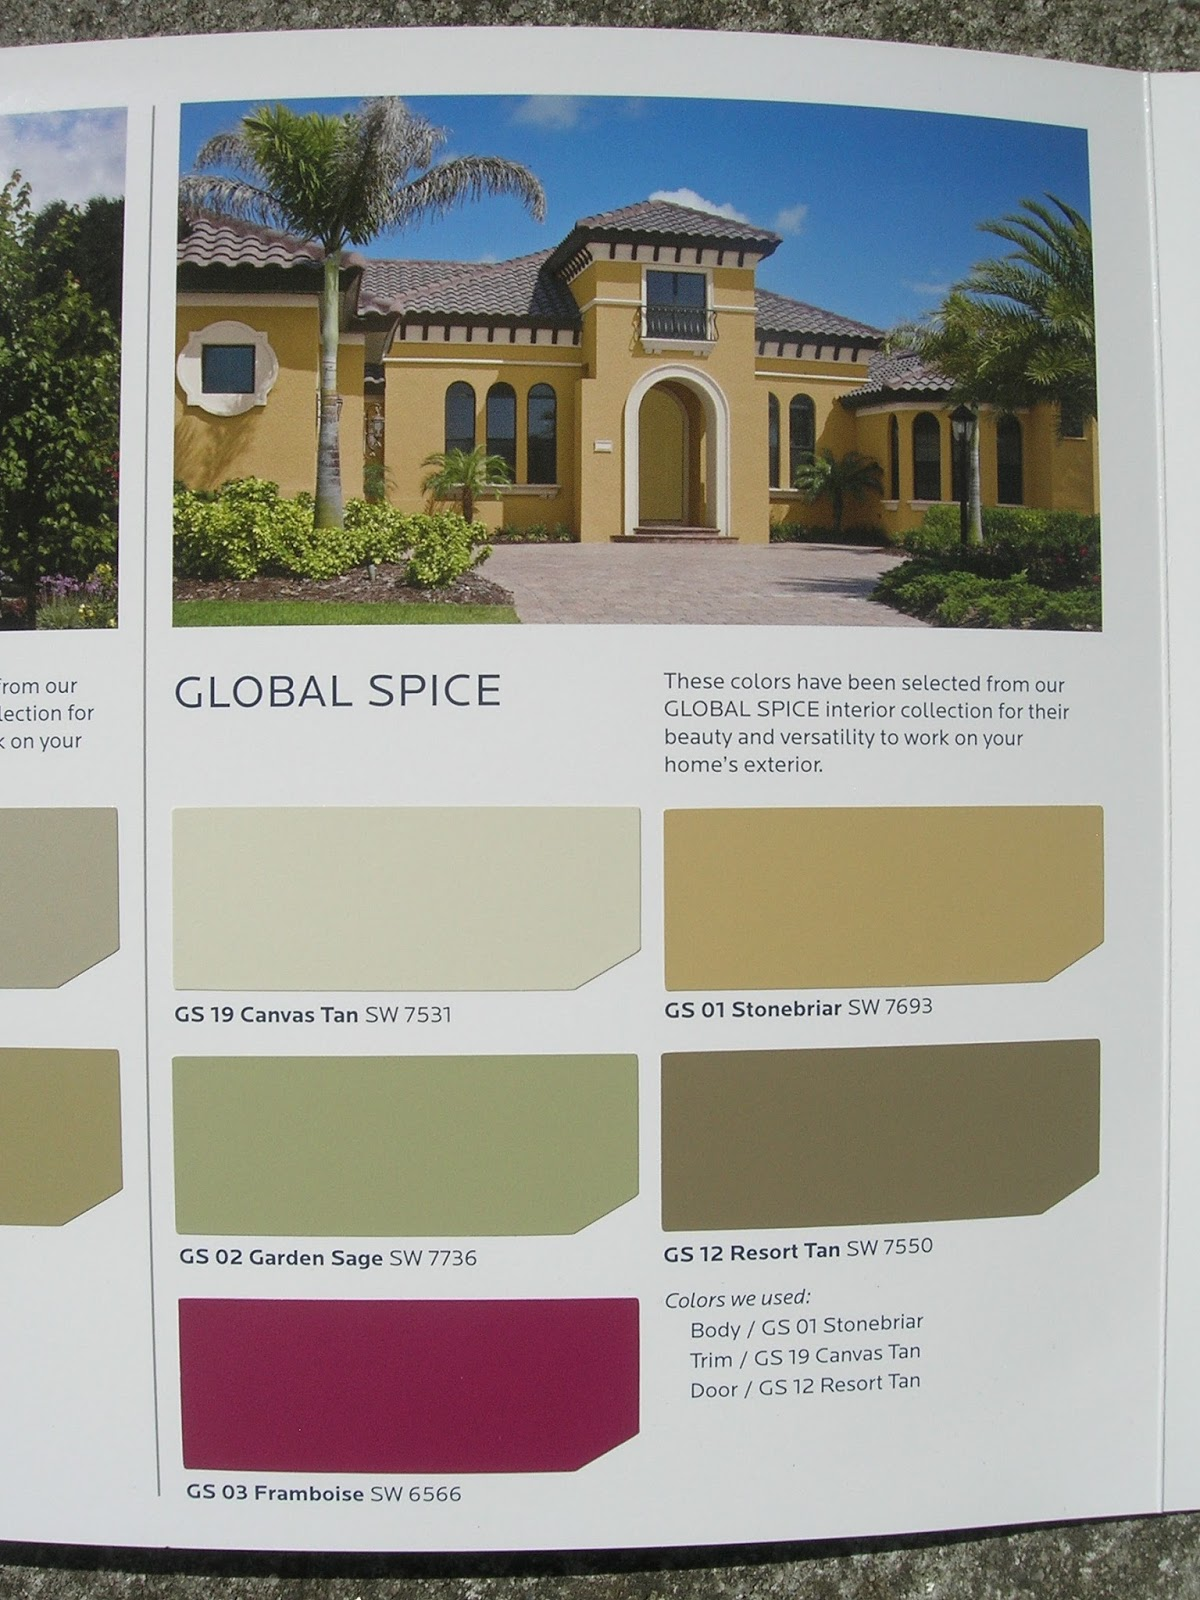 My little bungalow choosing exterior paint colors - Selecting exterior paint colors concept ...